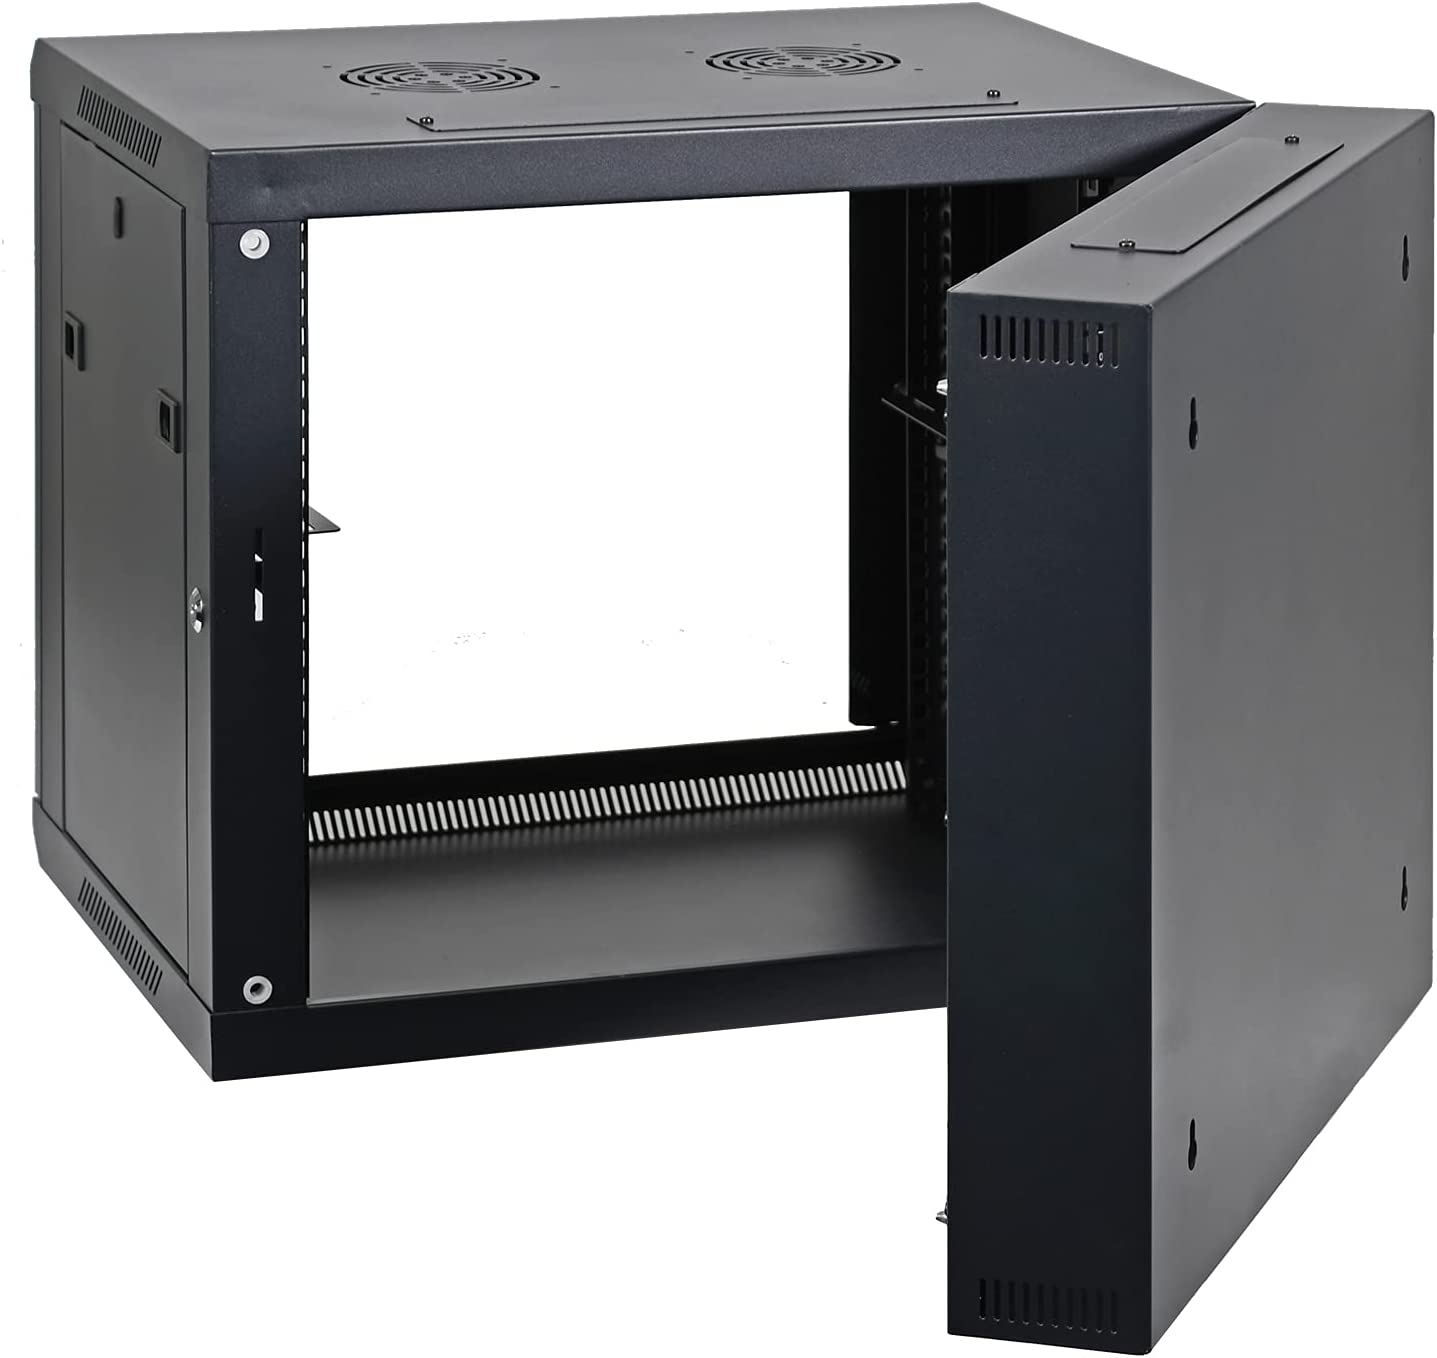 AEONS 9U Professional Wall Mount Server Cabinet Enclosure Double Section Hinged Swing Out 19-Inch Server Network Rack with Locking Glass Door Black (Fully Assembled)